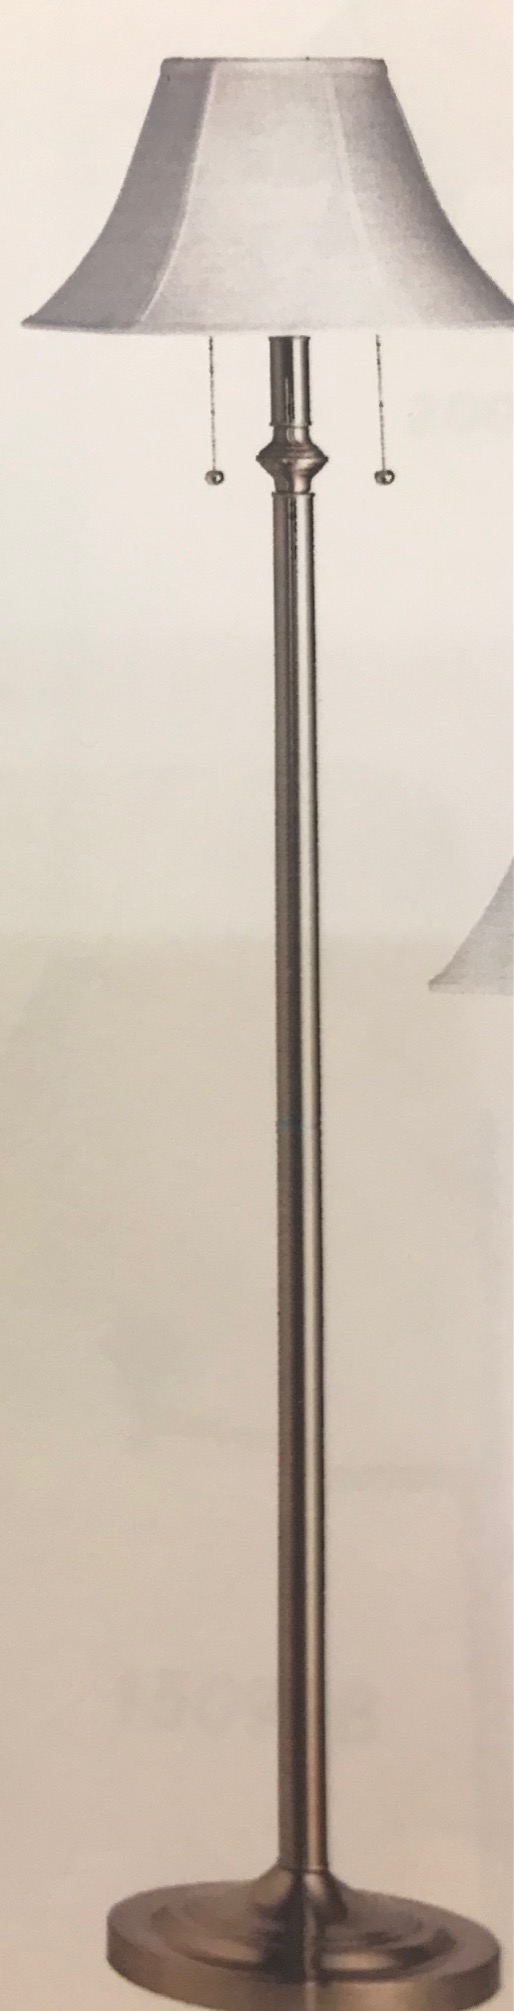 970  Table Lamp Made in Canada Available in Antique Brass or Brushed Chrome Regular Price $335.99 Sale Price $235.99